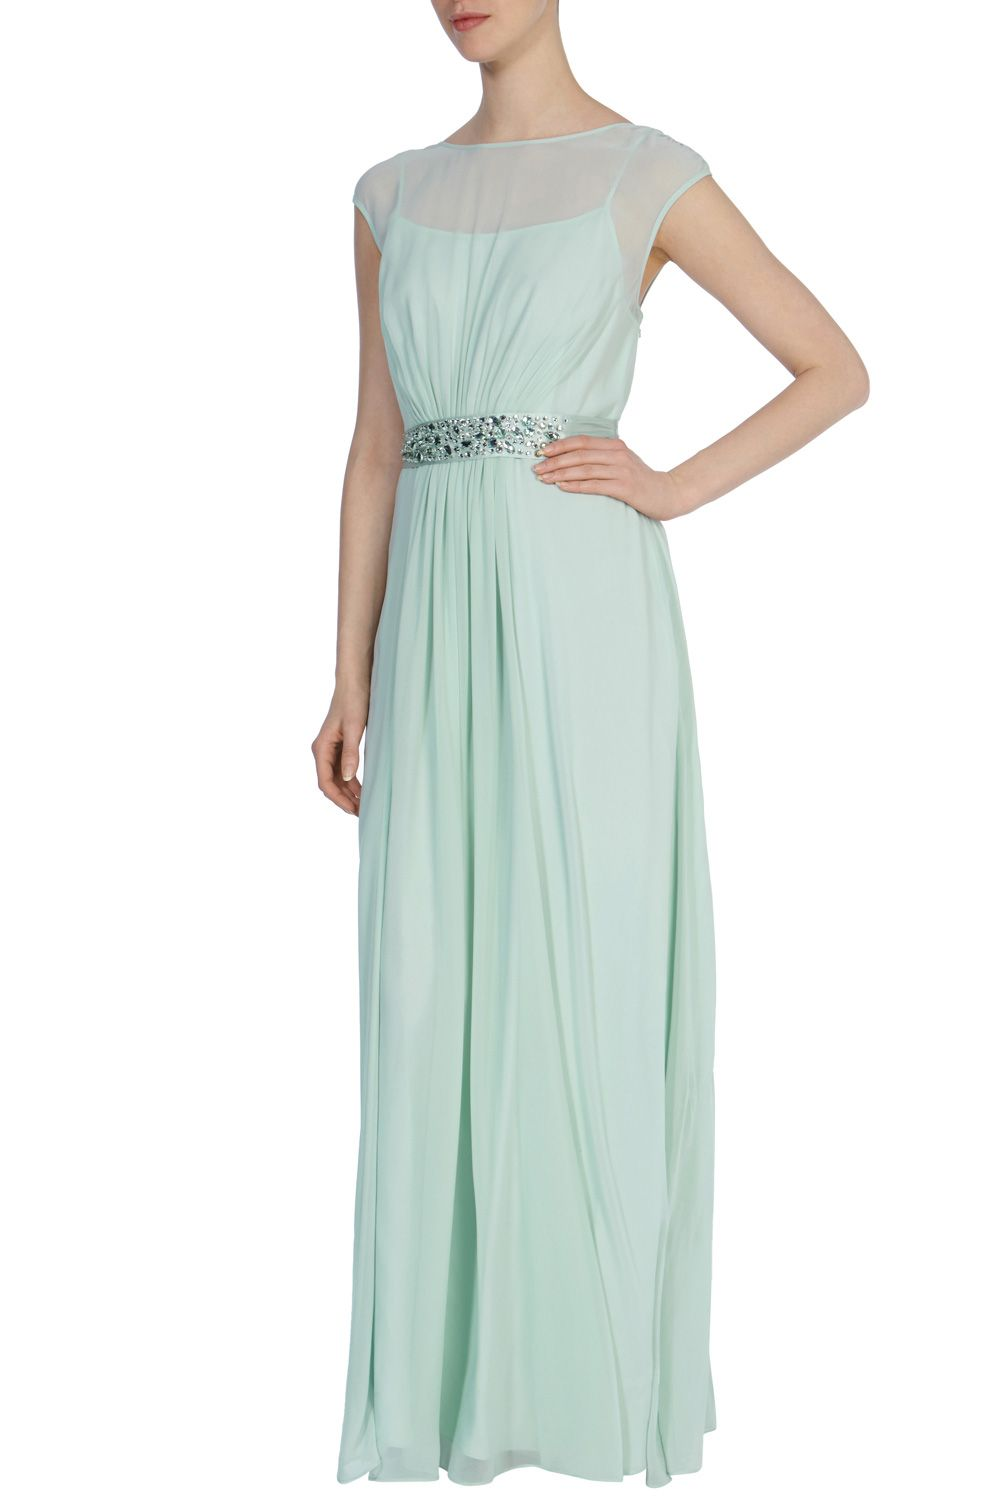 LORI LEE MAXI DRESS... | Dresses | Pinterest | Maxi dresses and ...